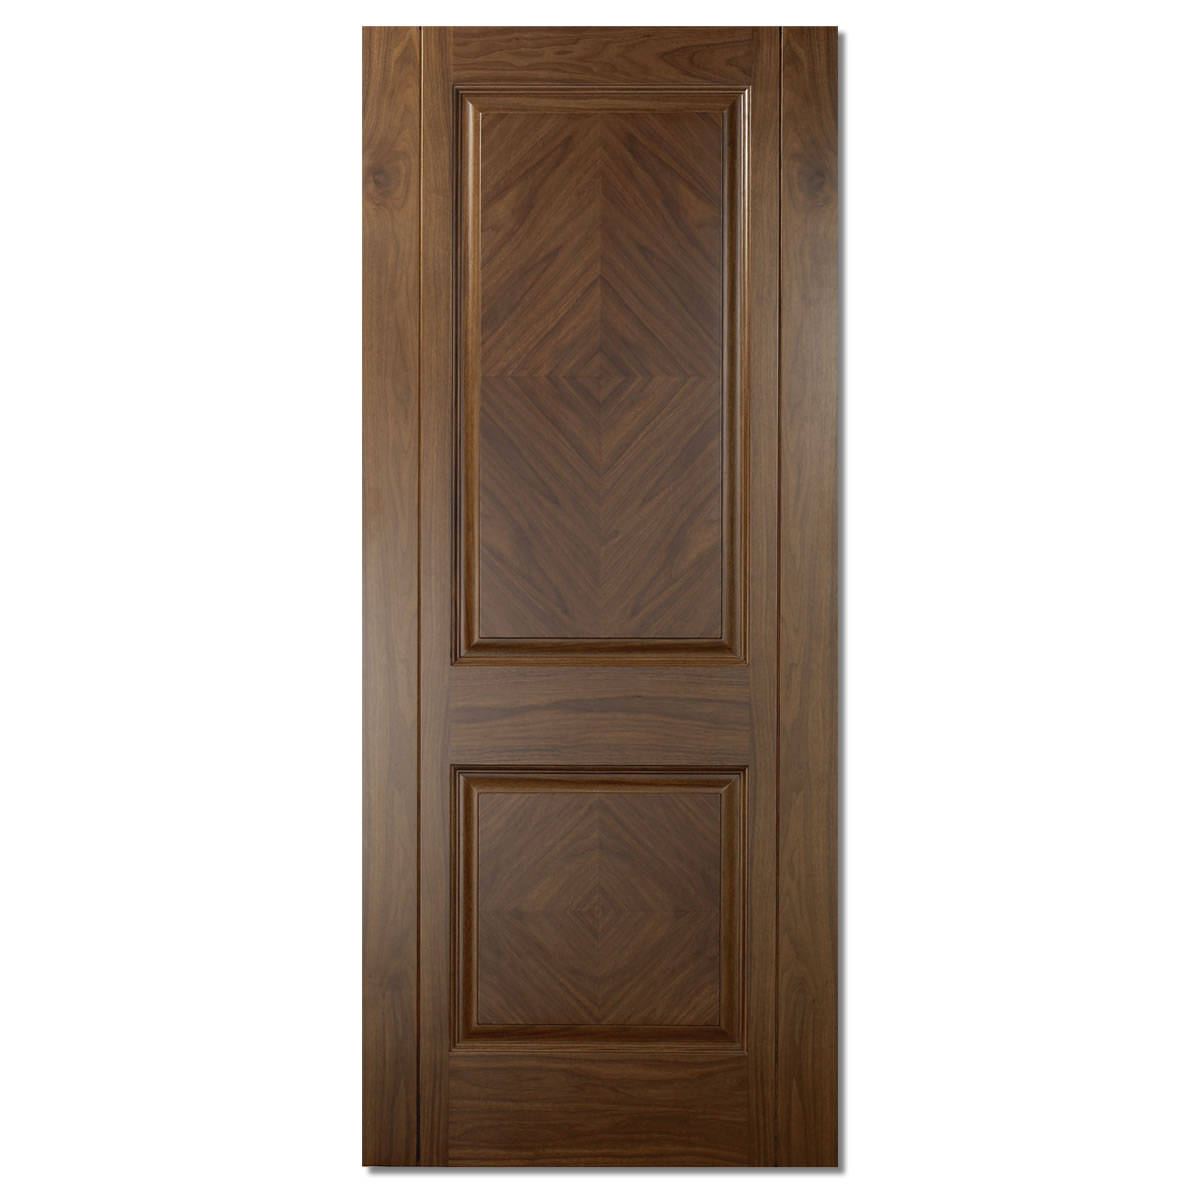 Madrid walnut pre finished 1 2 hour for 1 hour fire rated door price